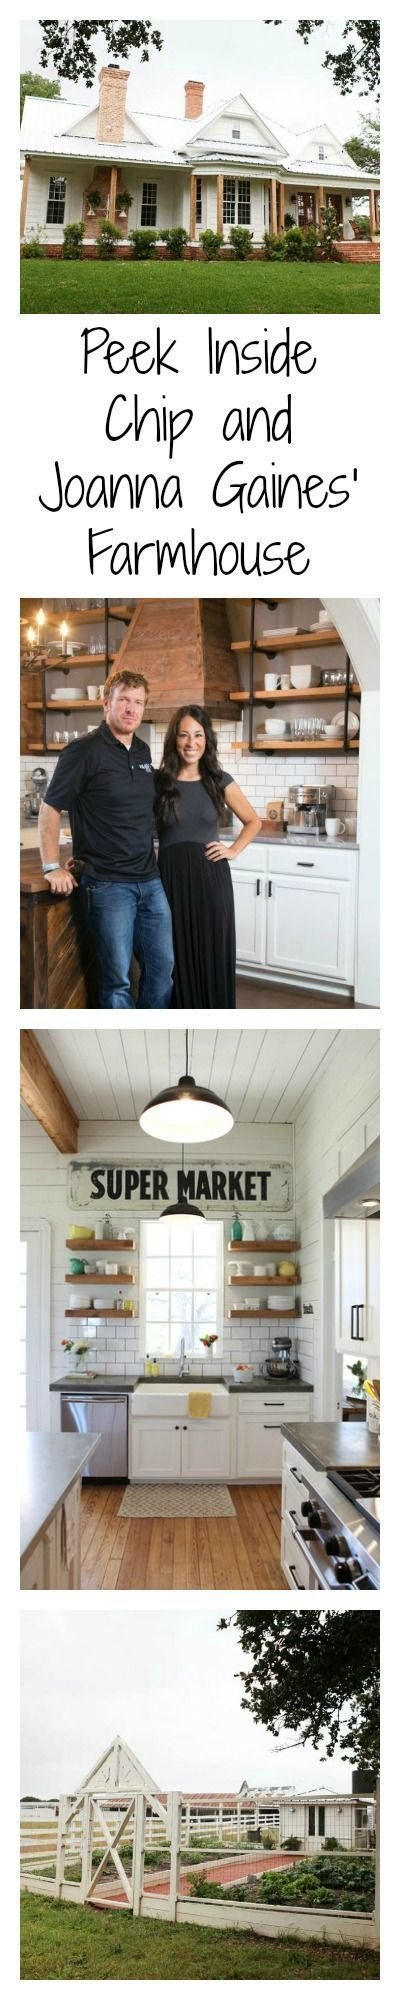 pinterest fixer uppers grey ranch house | ... Farmhouse op Pinterest - Joanna Gaines, Opknapper en Magnolia Moeder